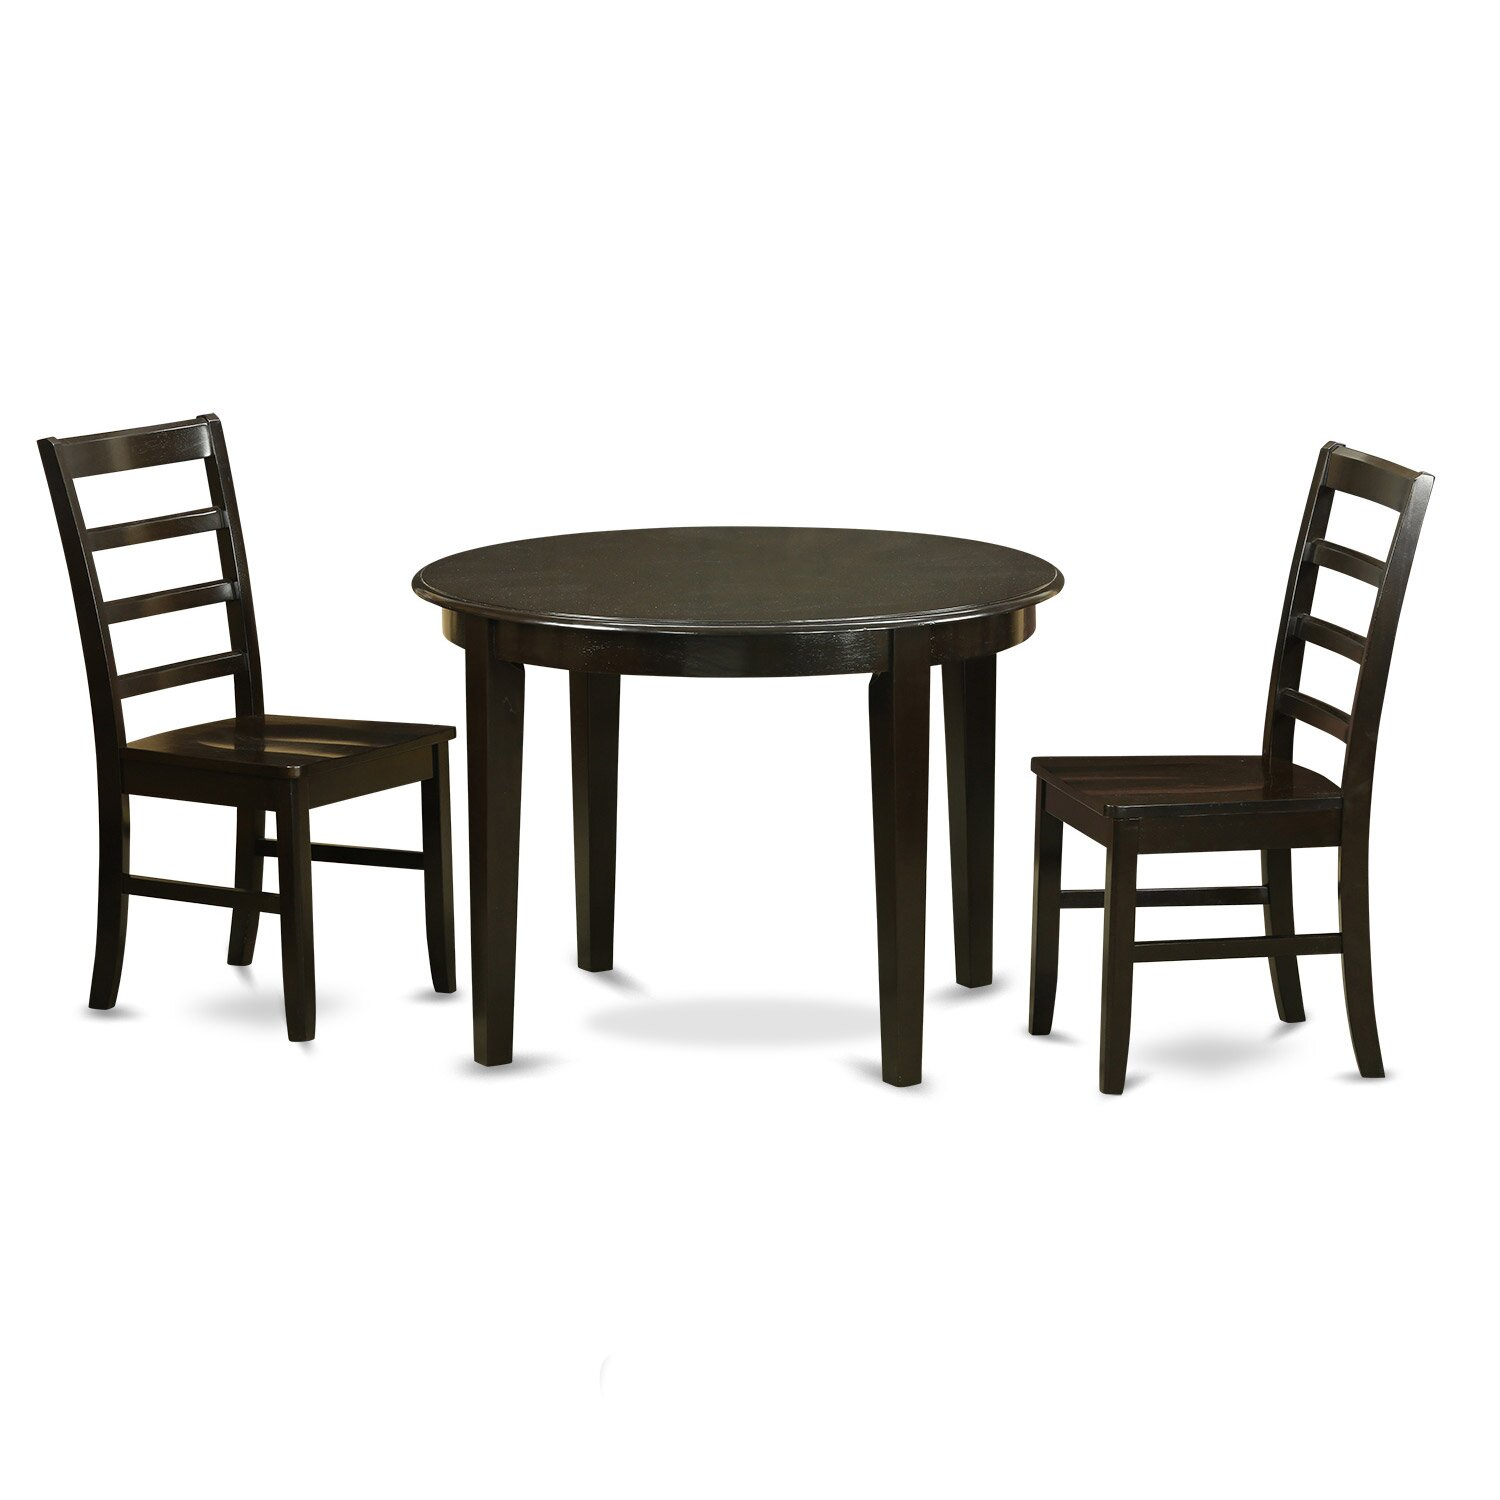 Small Kitchen Table 2 Chairs 3 Piece Kitchen Table Set Oak Small Kitchen Table And 2 Kitchen